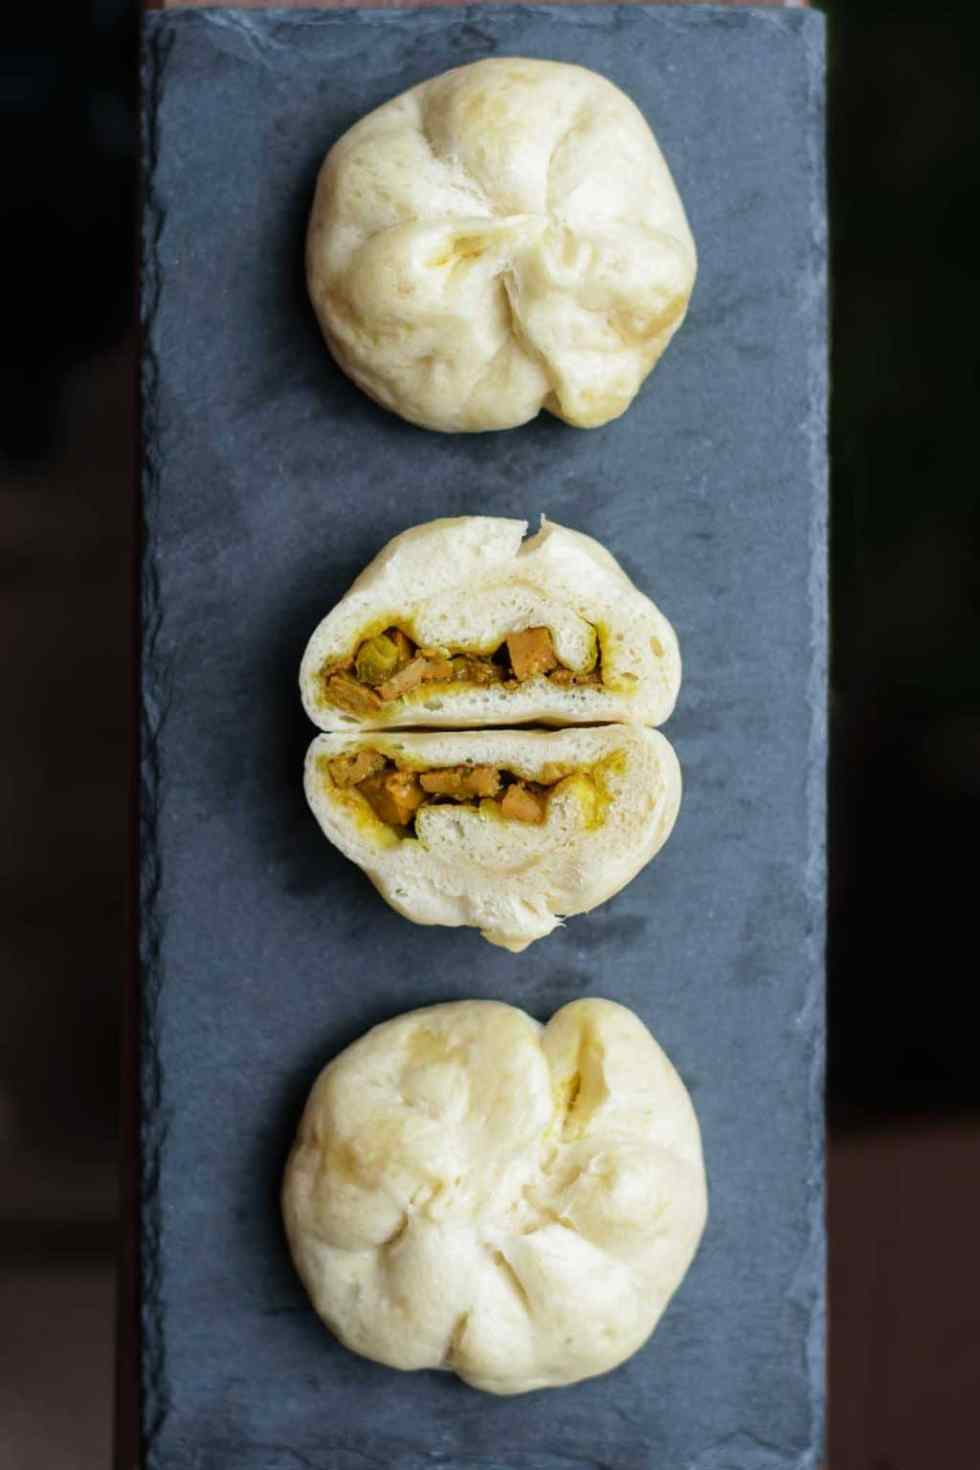 3 curry seitan siopao on a black slate with the middle one cut open. Dark background.